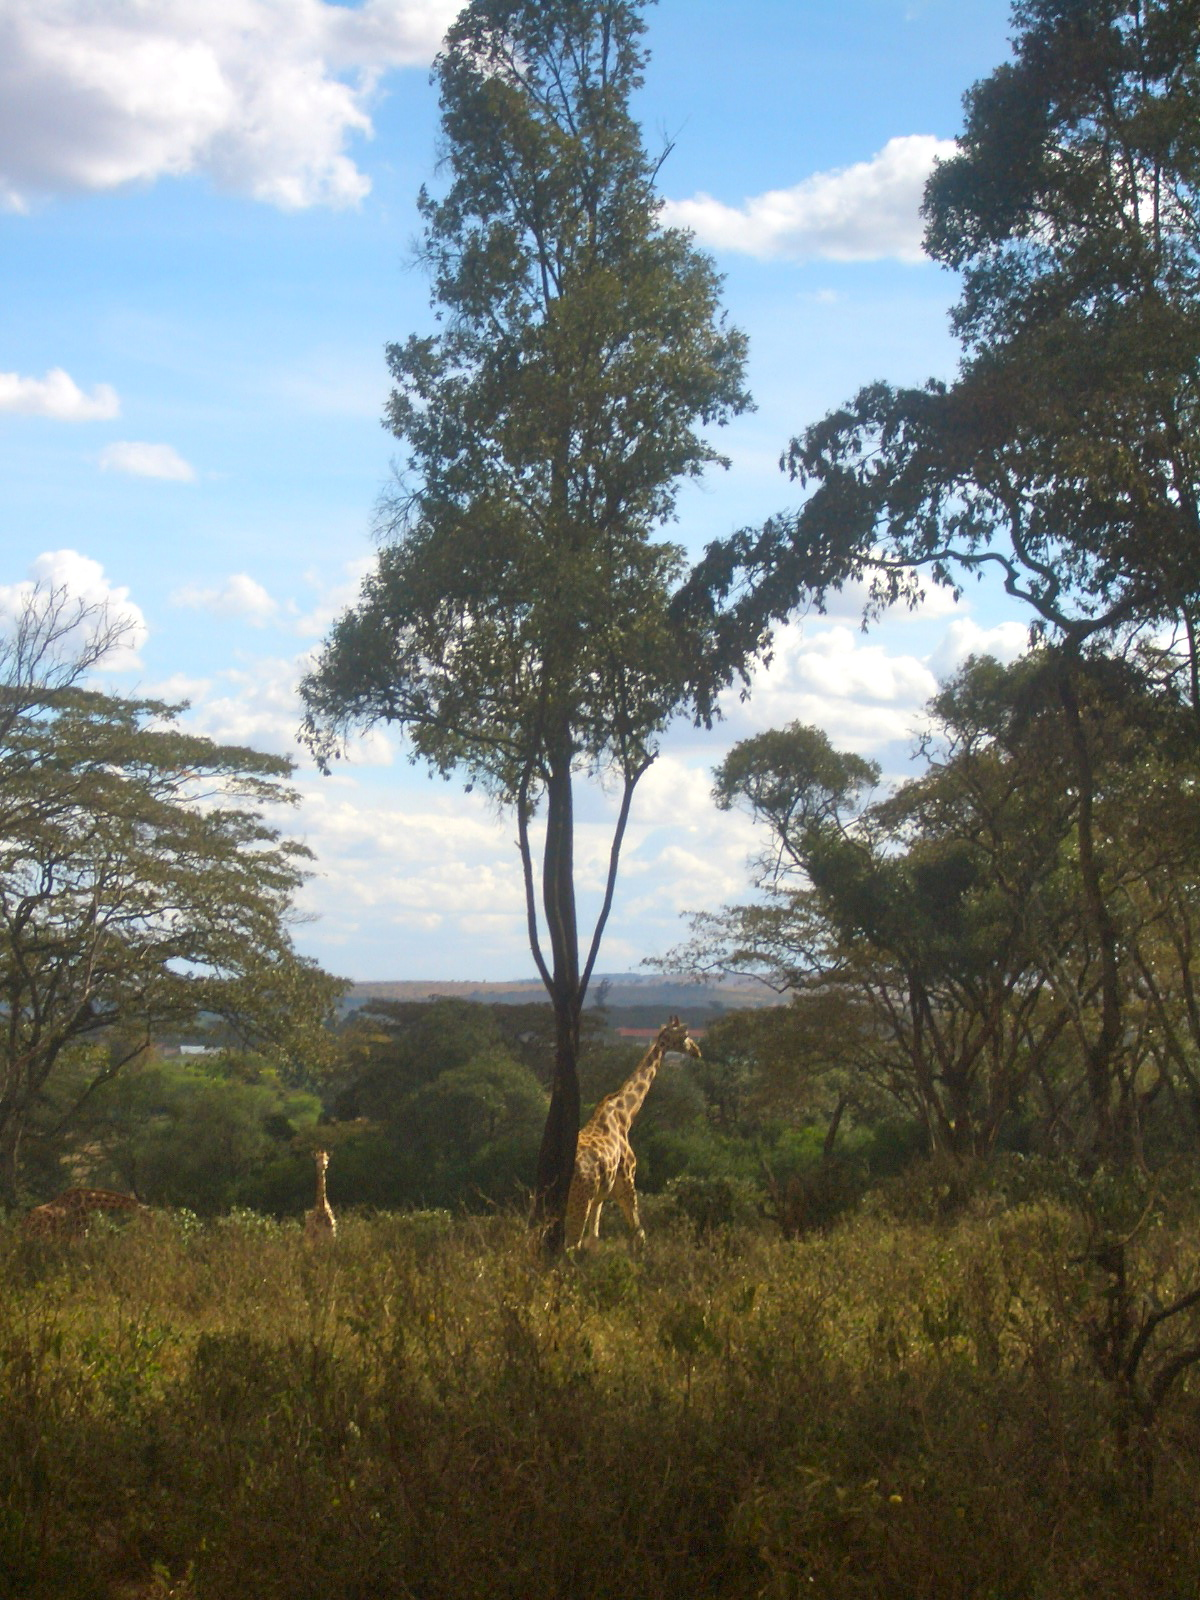 The Giraffe Preserve